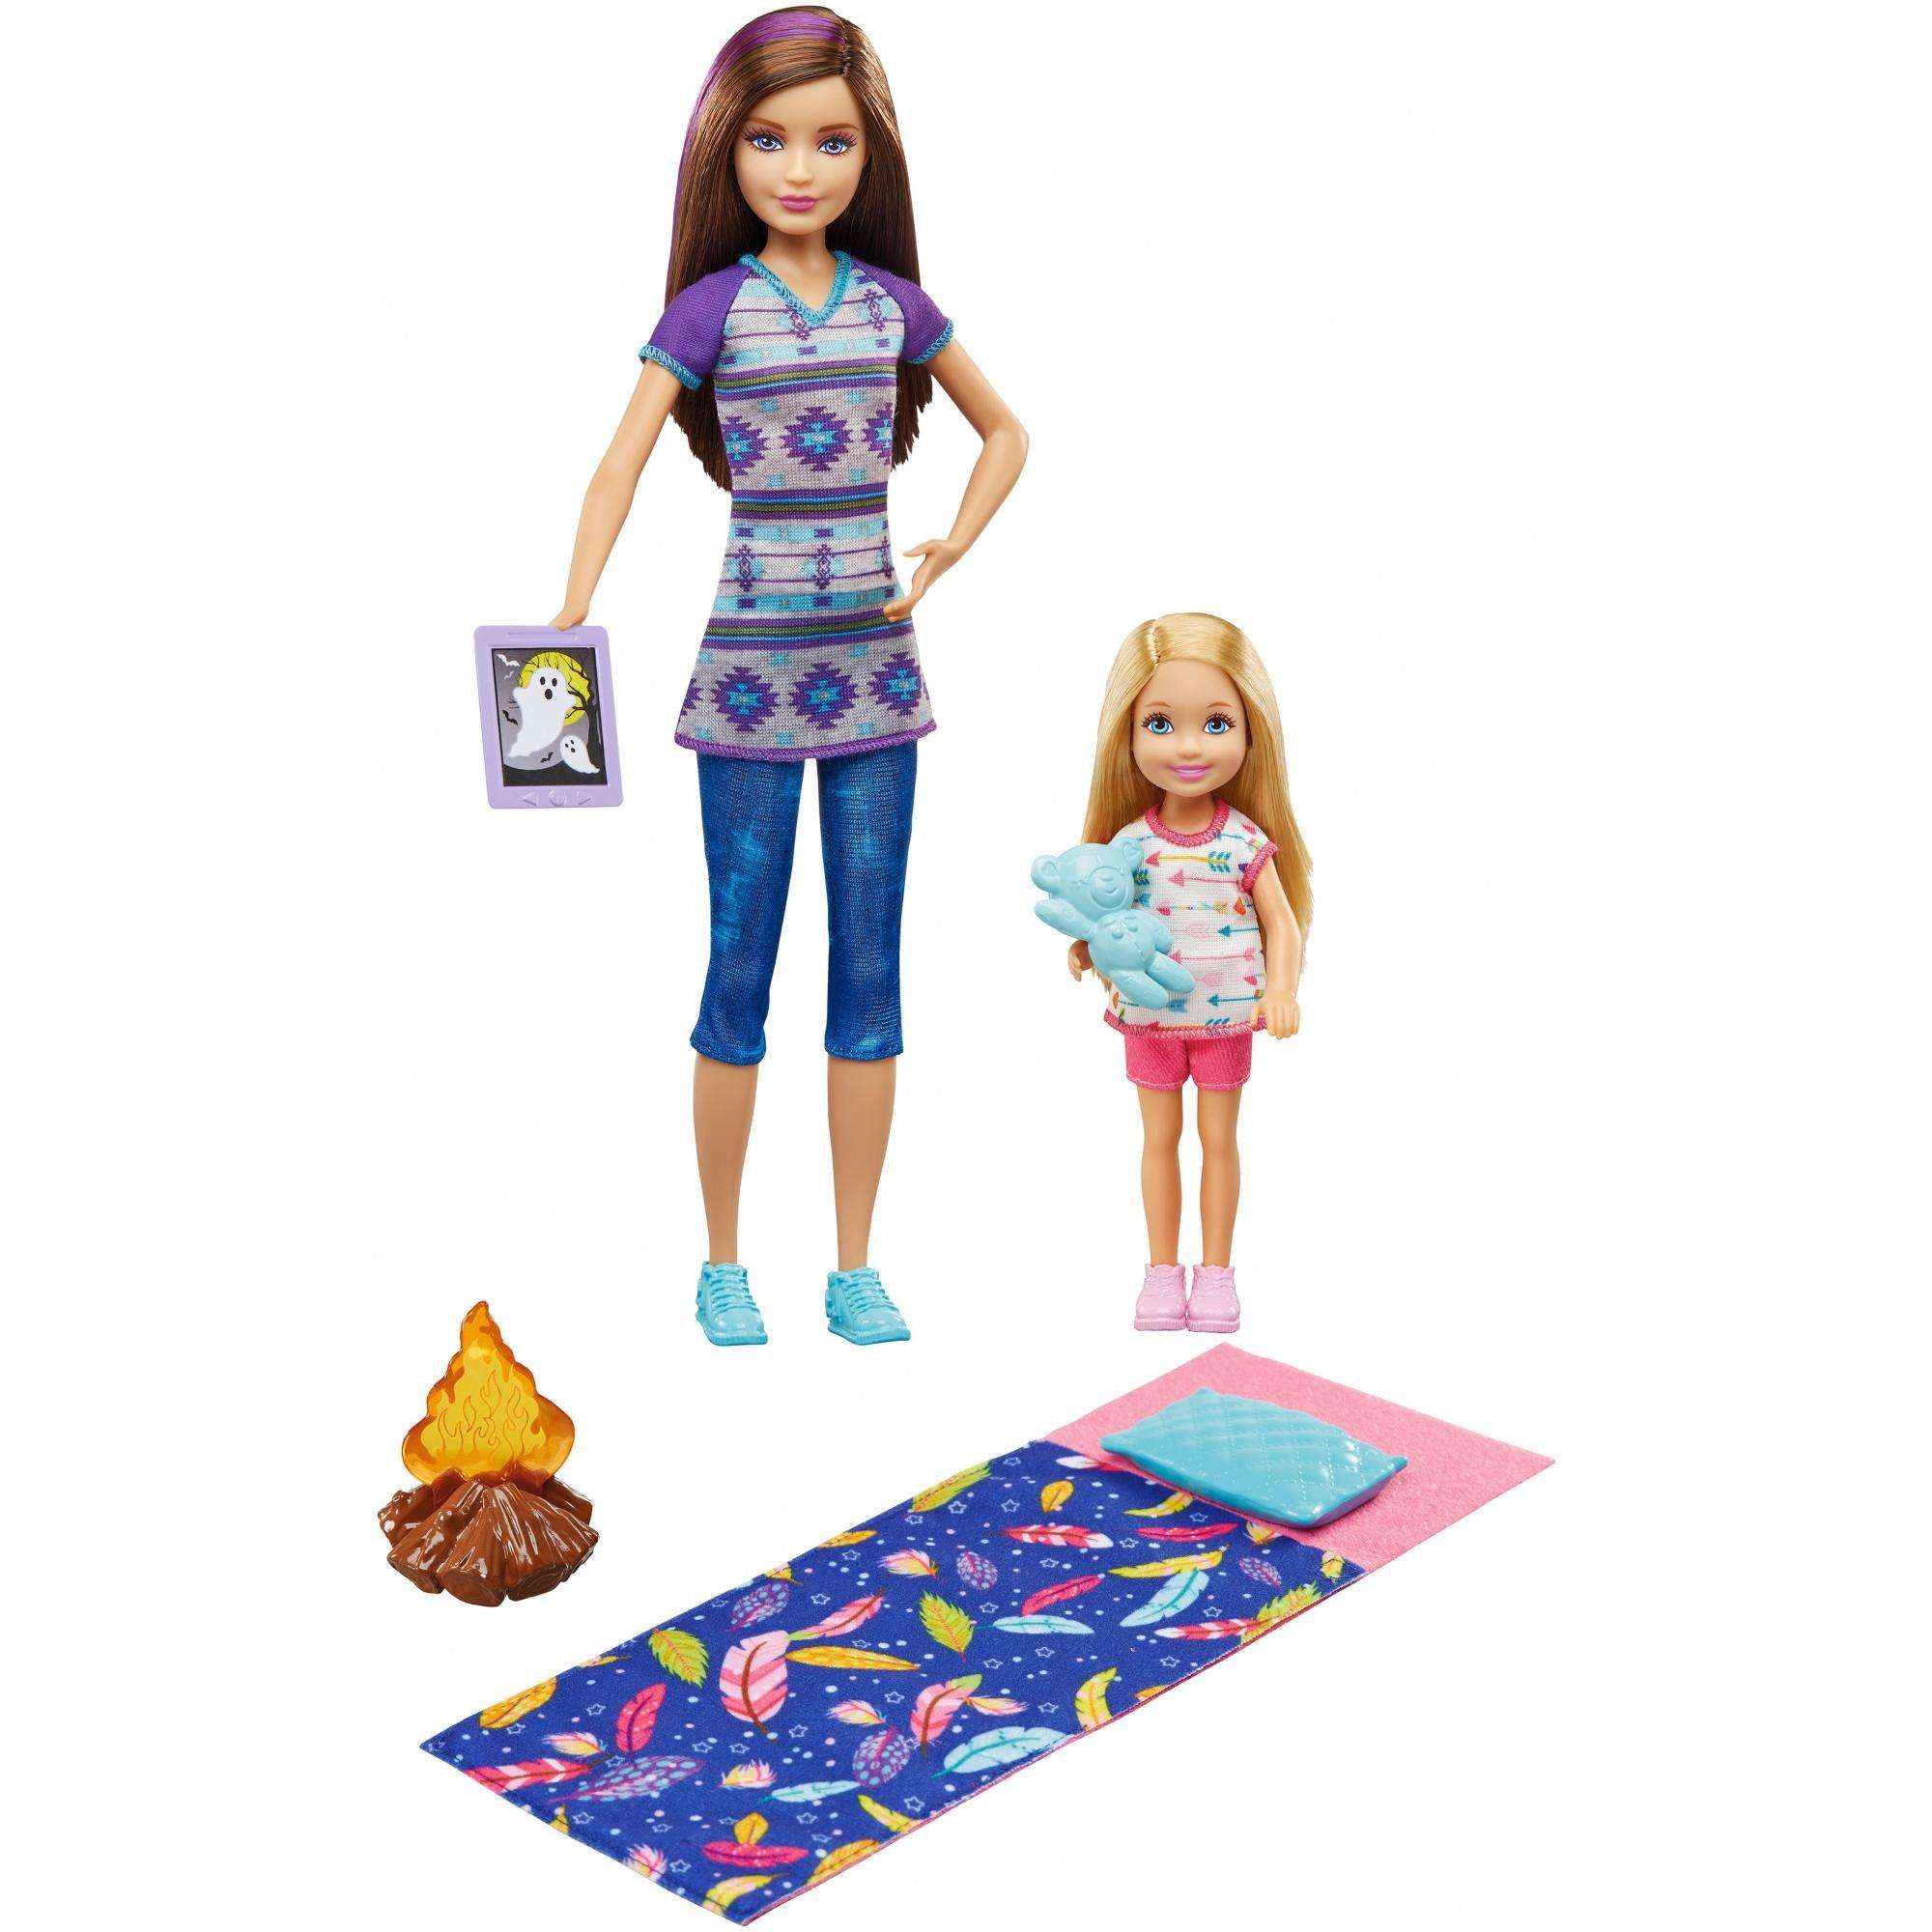 Barbie Camping Fun Skipper & Chelsea Dolls with Smores & Campfire Accessories by MTHK - CHANG AN